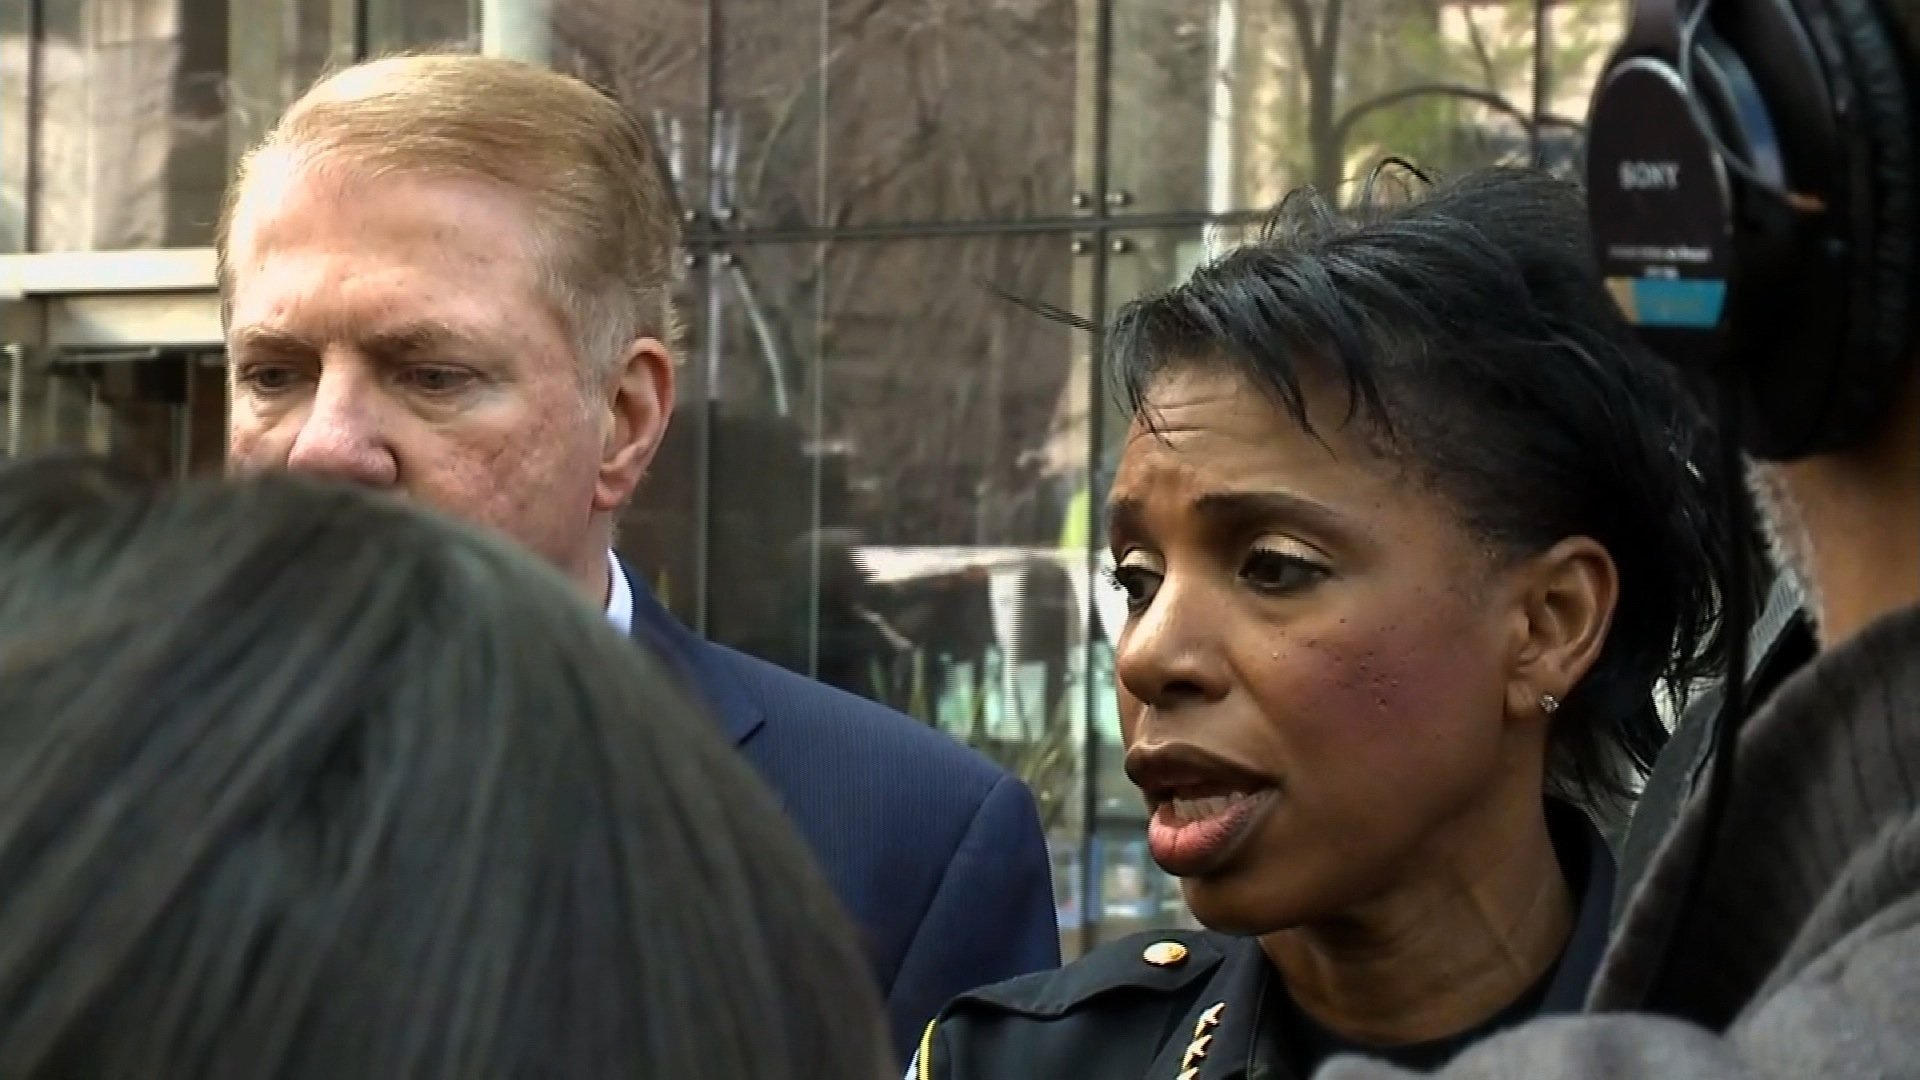 **Embargo: Seattle, WA**  As officers responded, a female suspect hit one of the officers on the head with a bottle and another suspect ran into a building, barricading himself inside, Seattle Police spokeswoman Carmen Best said at a news conference.